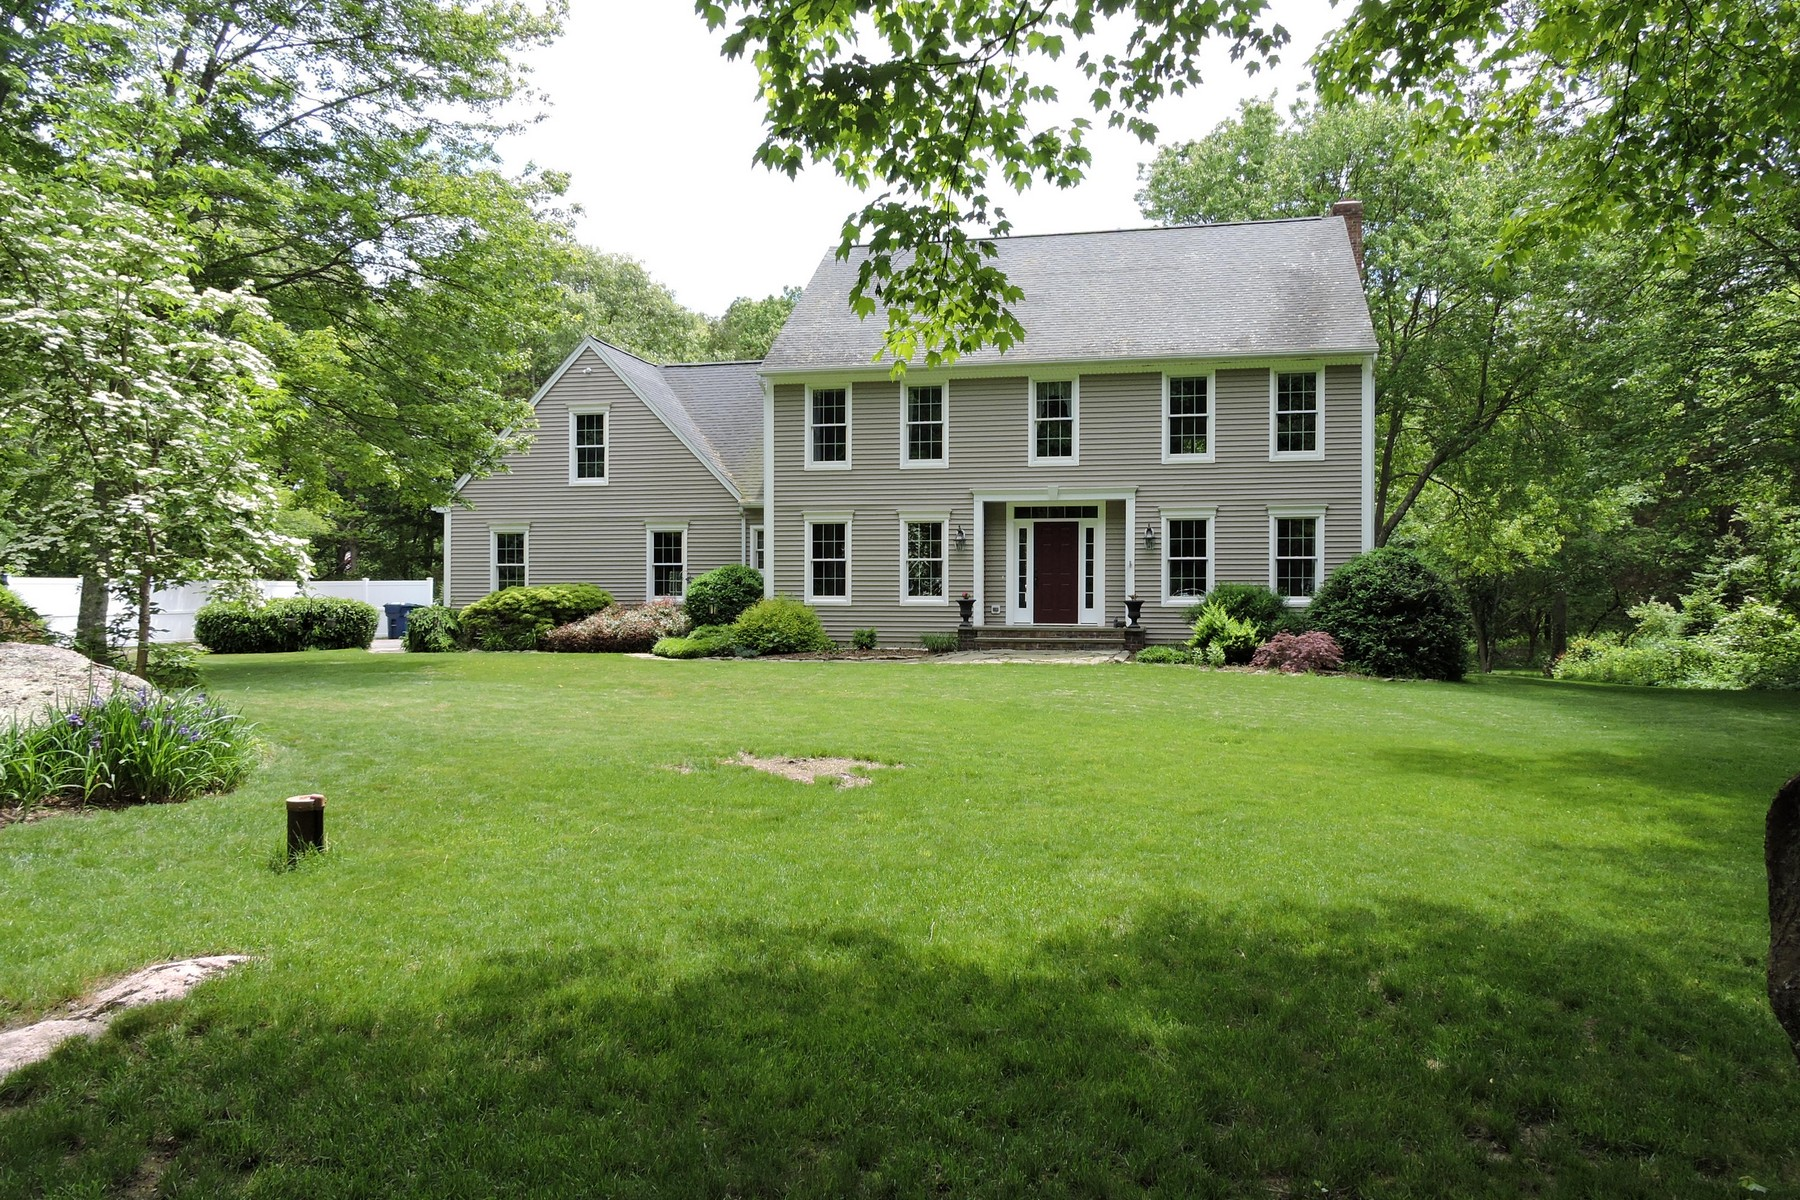 Single Family Home for Sale at Classic Features, Fine Craftsmanship 4 Somerset Lane Old Lyme, Connecticut 06371 United States